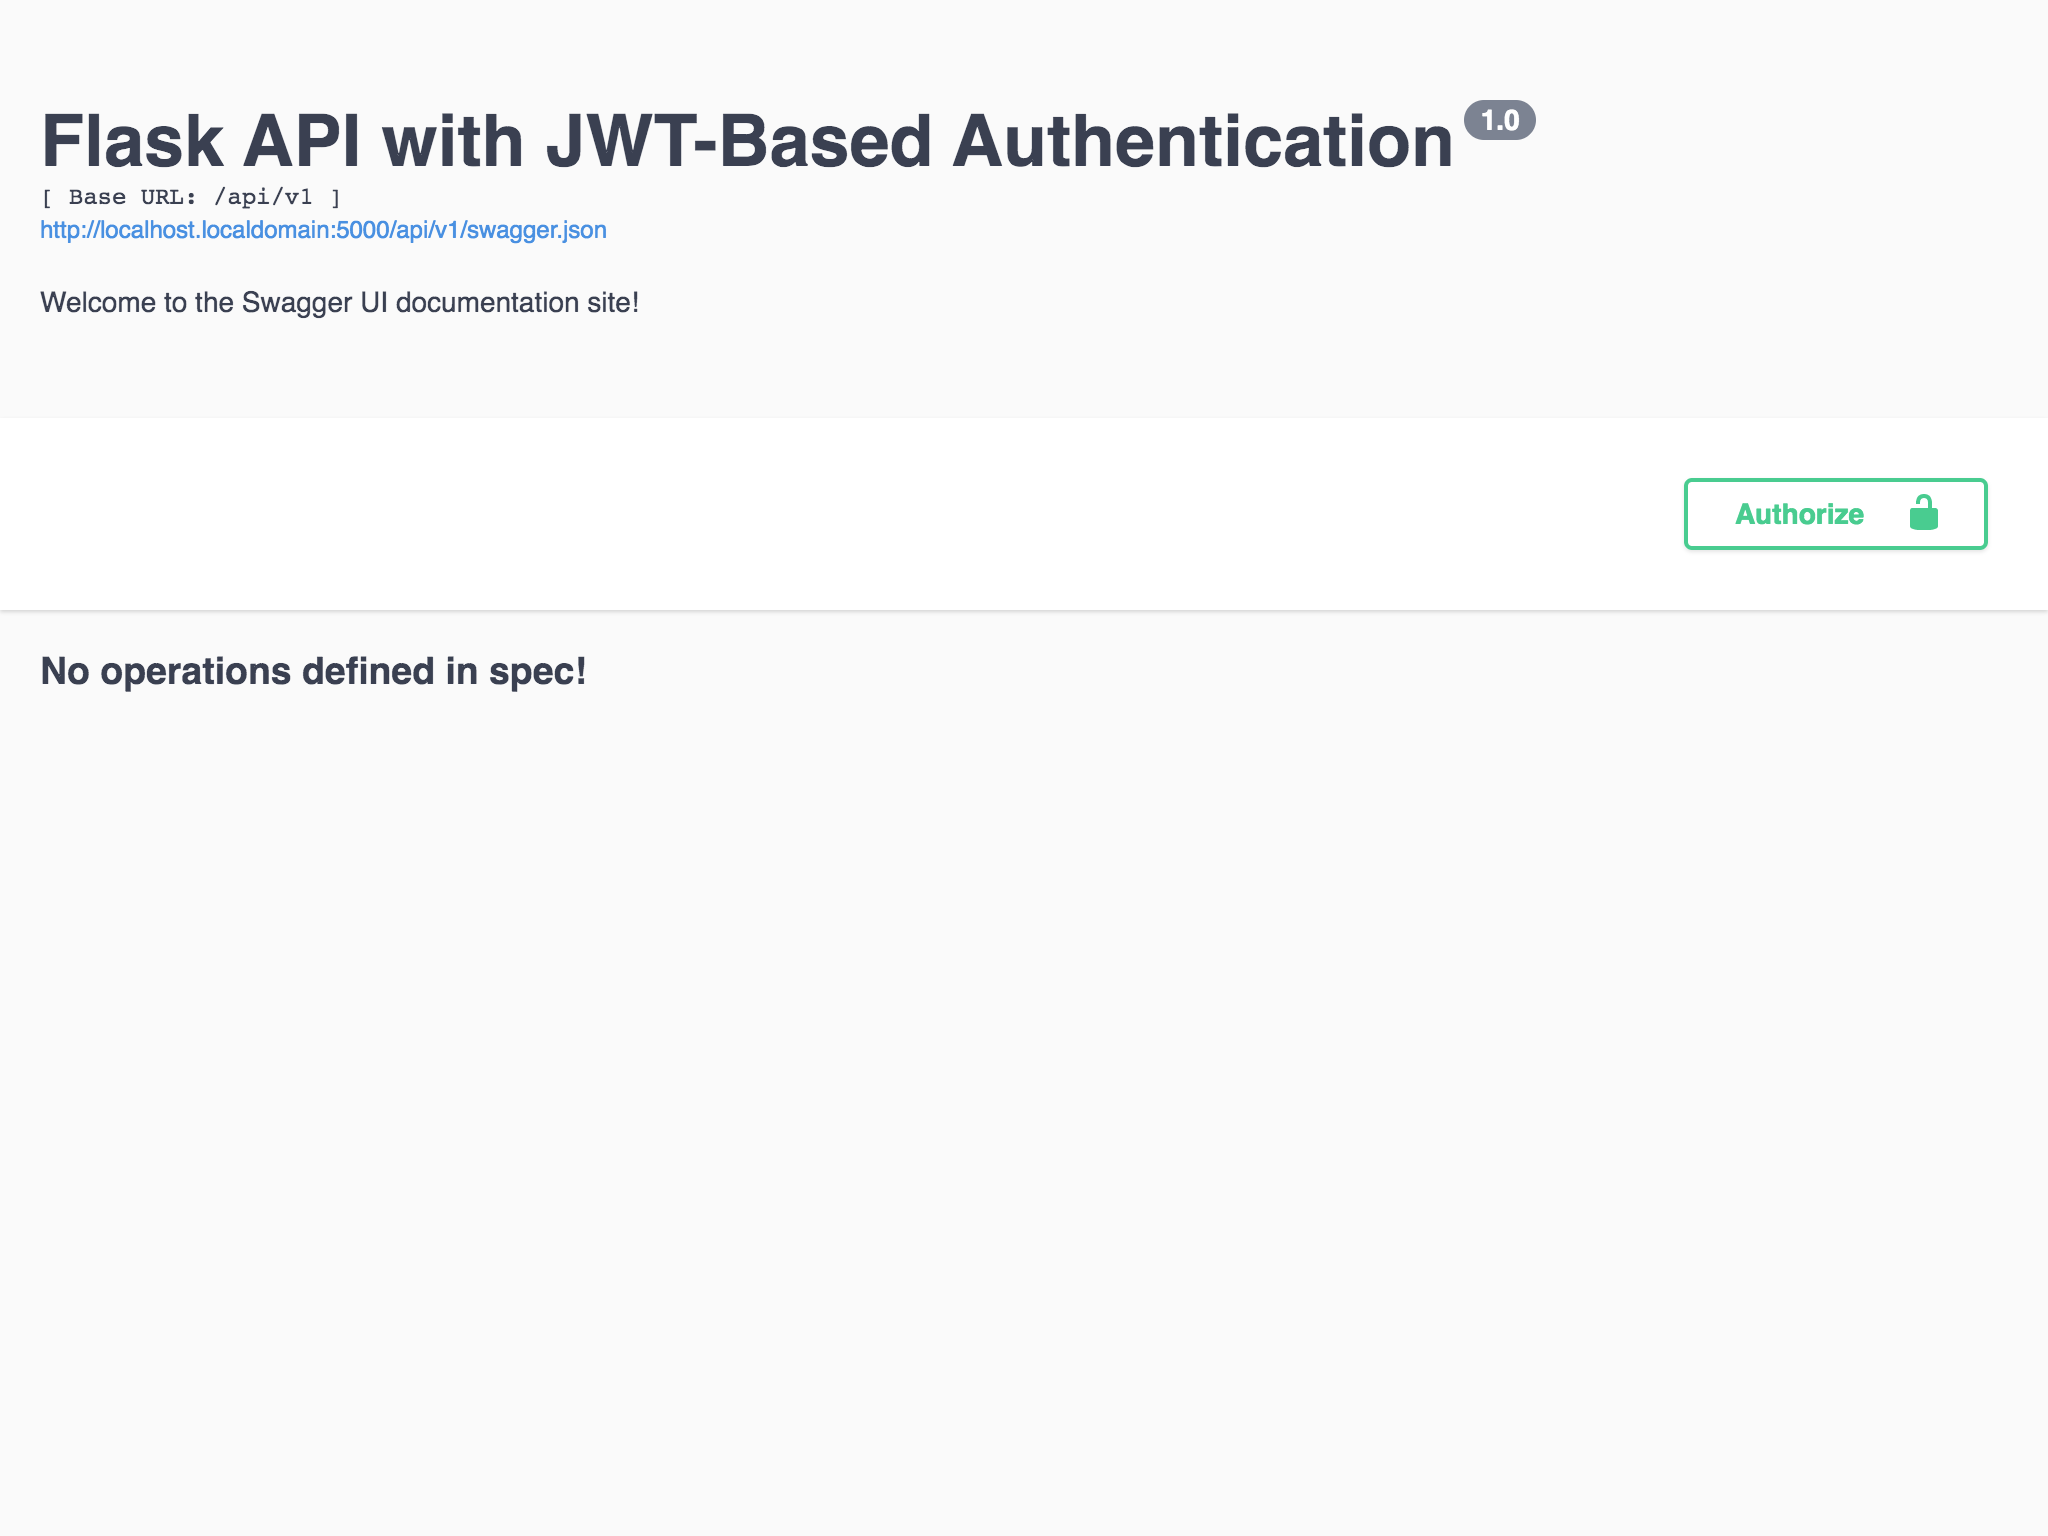 How To: Create a Flask API with JWT-Based Authentication (Part 3)